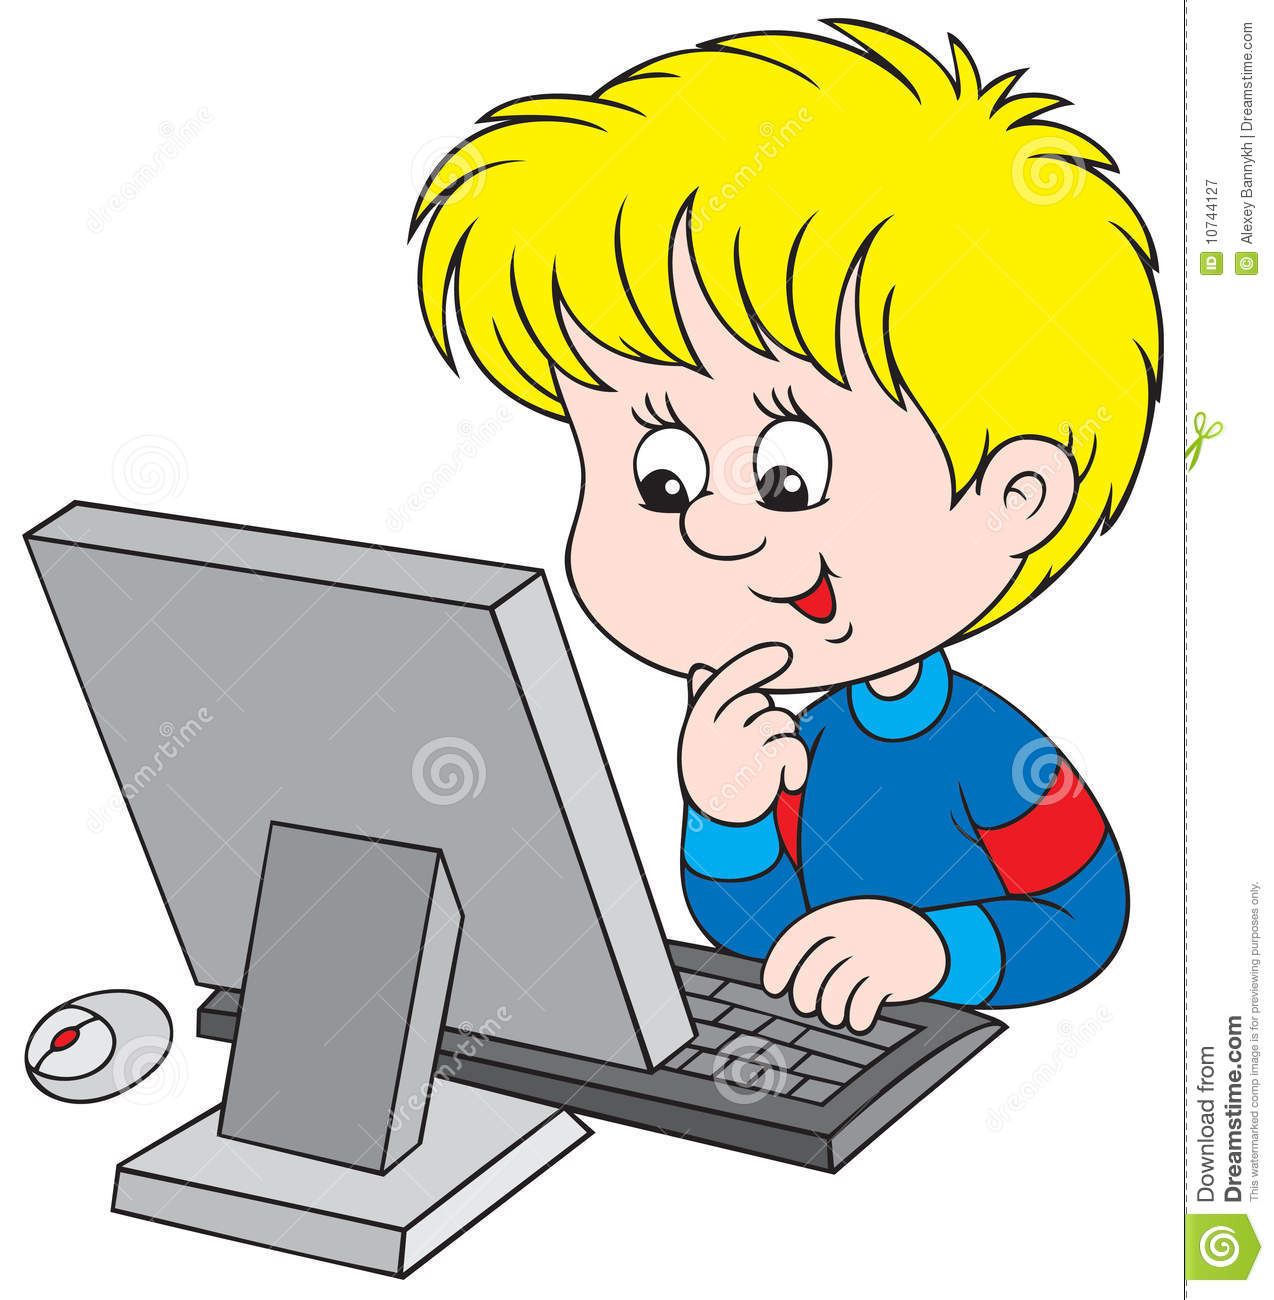 Boy in front of a computer clipart vector freeuse library Kid On Computer Clipart | Free download best Kid On Computer Clipart ... vector freeuse library